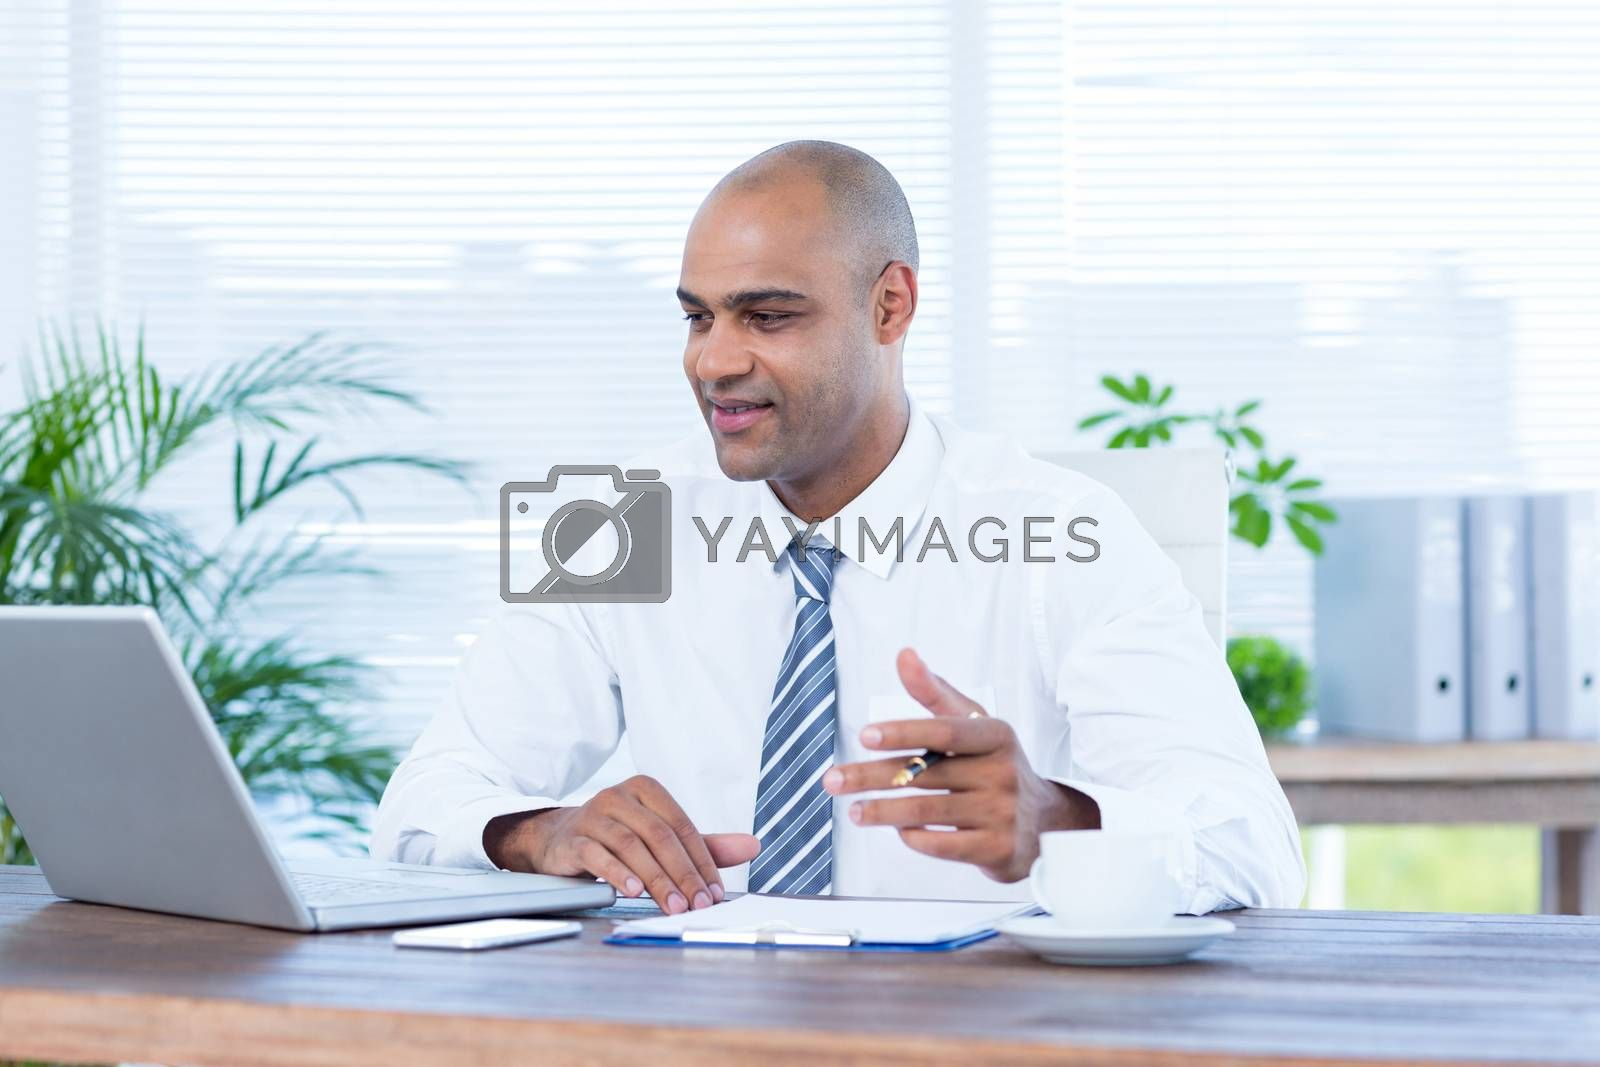 Royalty free image of Smiling businessman working on laptop by Wavebreakmedia